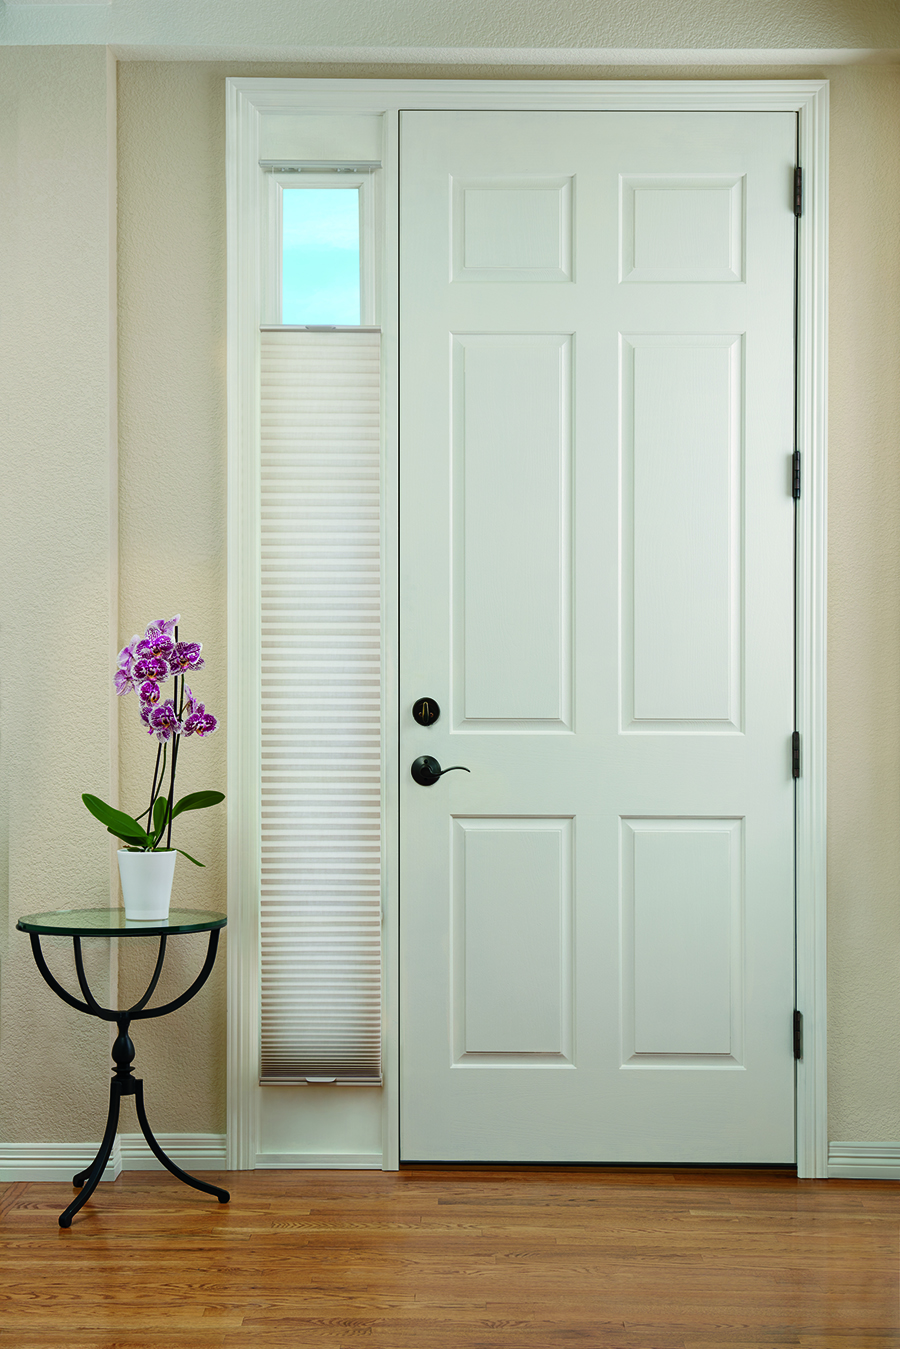 Duette® Honeycomb Shades in an entryway